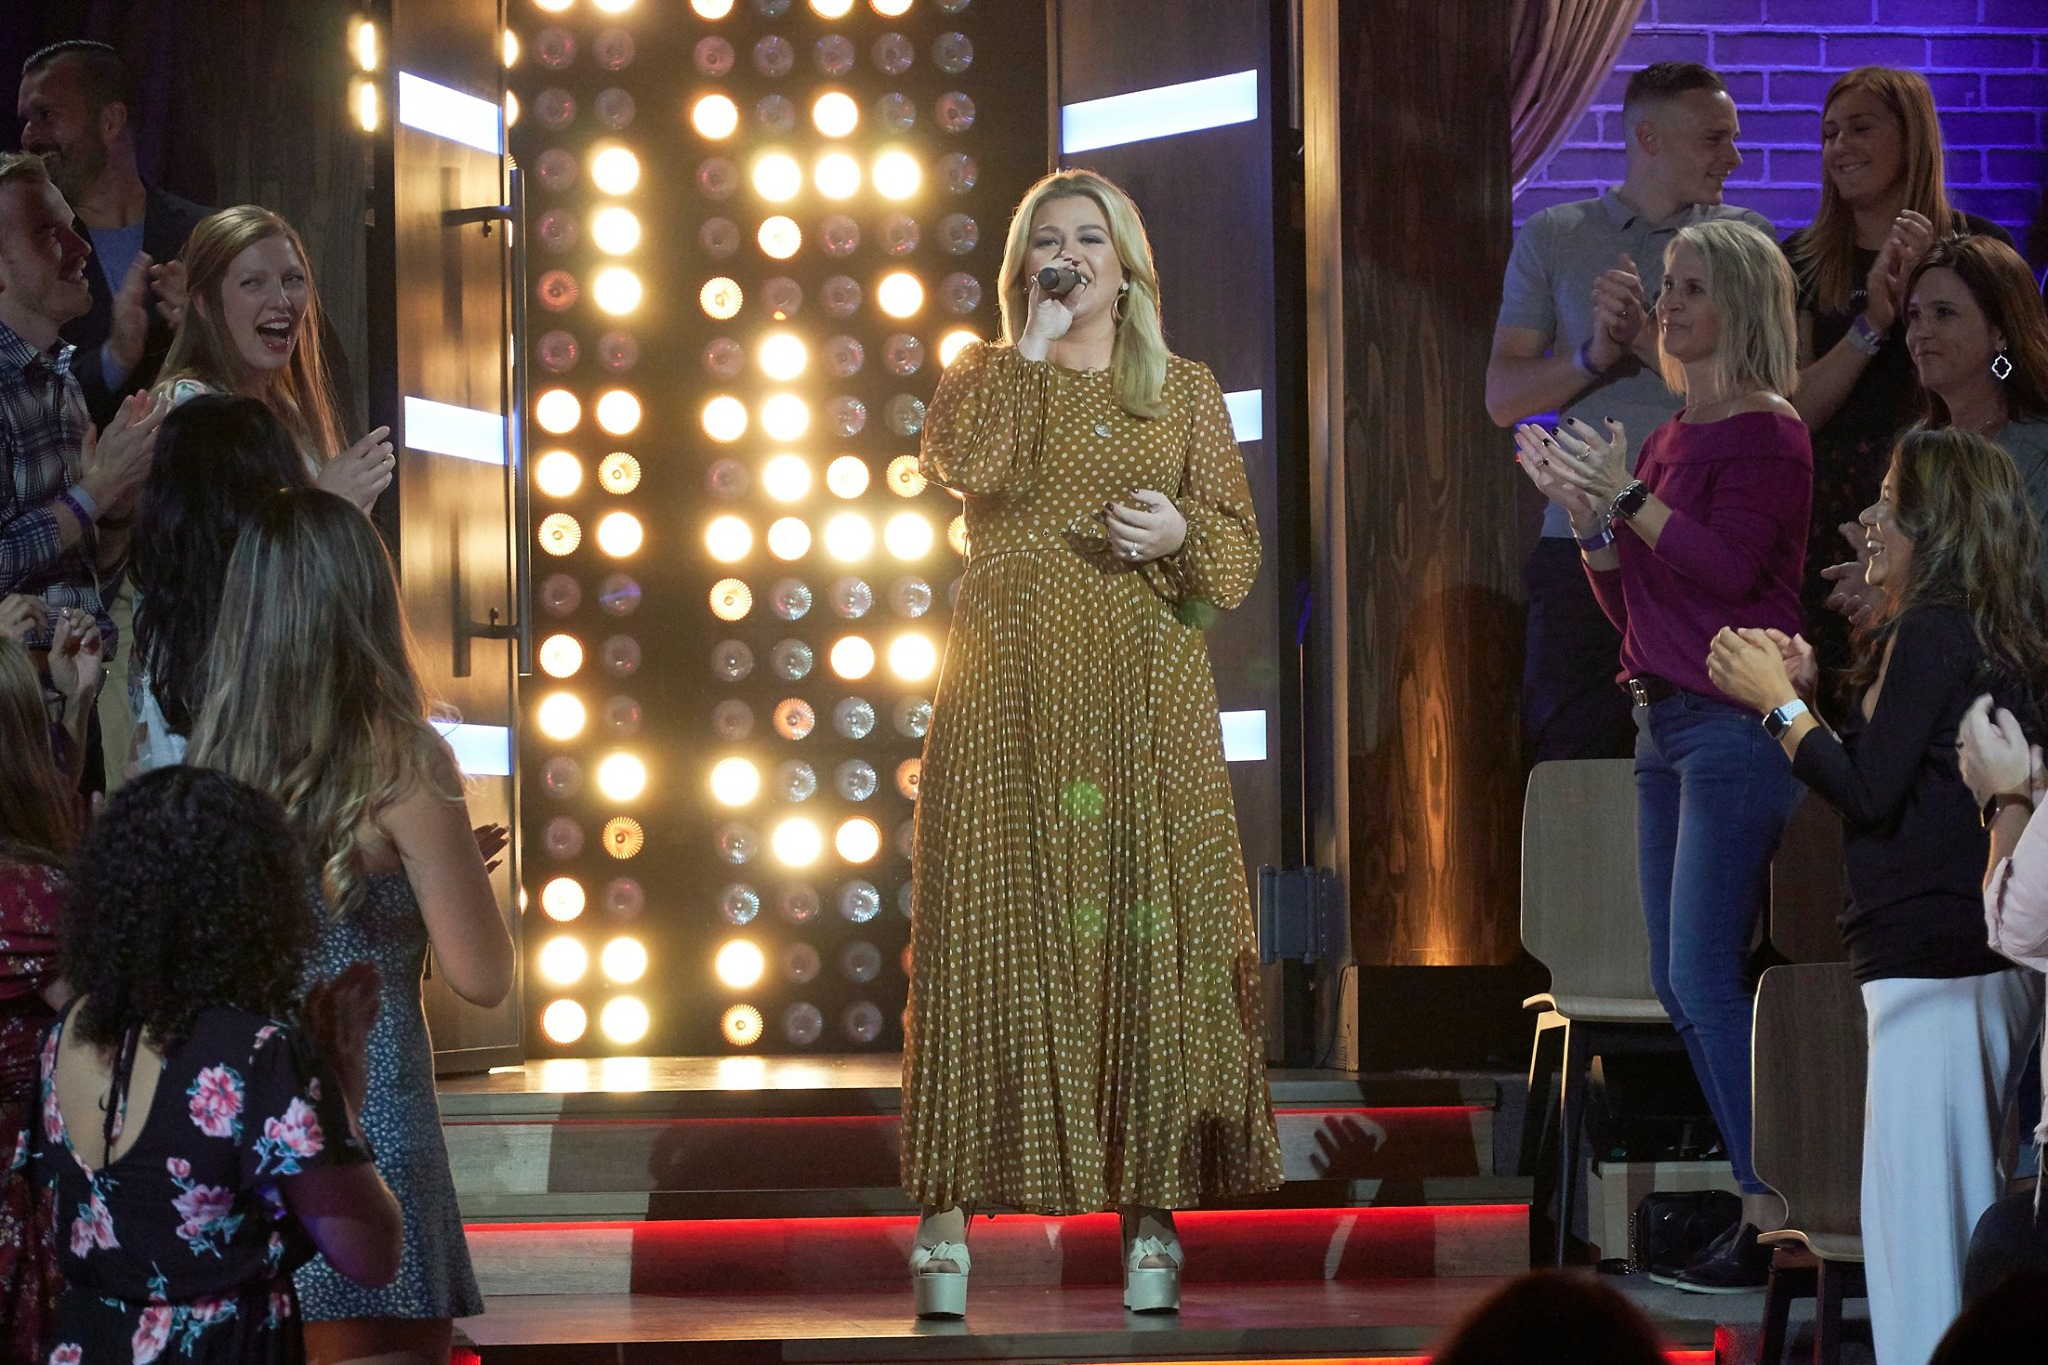 kelly clarkson performing on her talk show